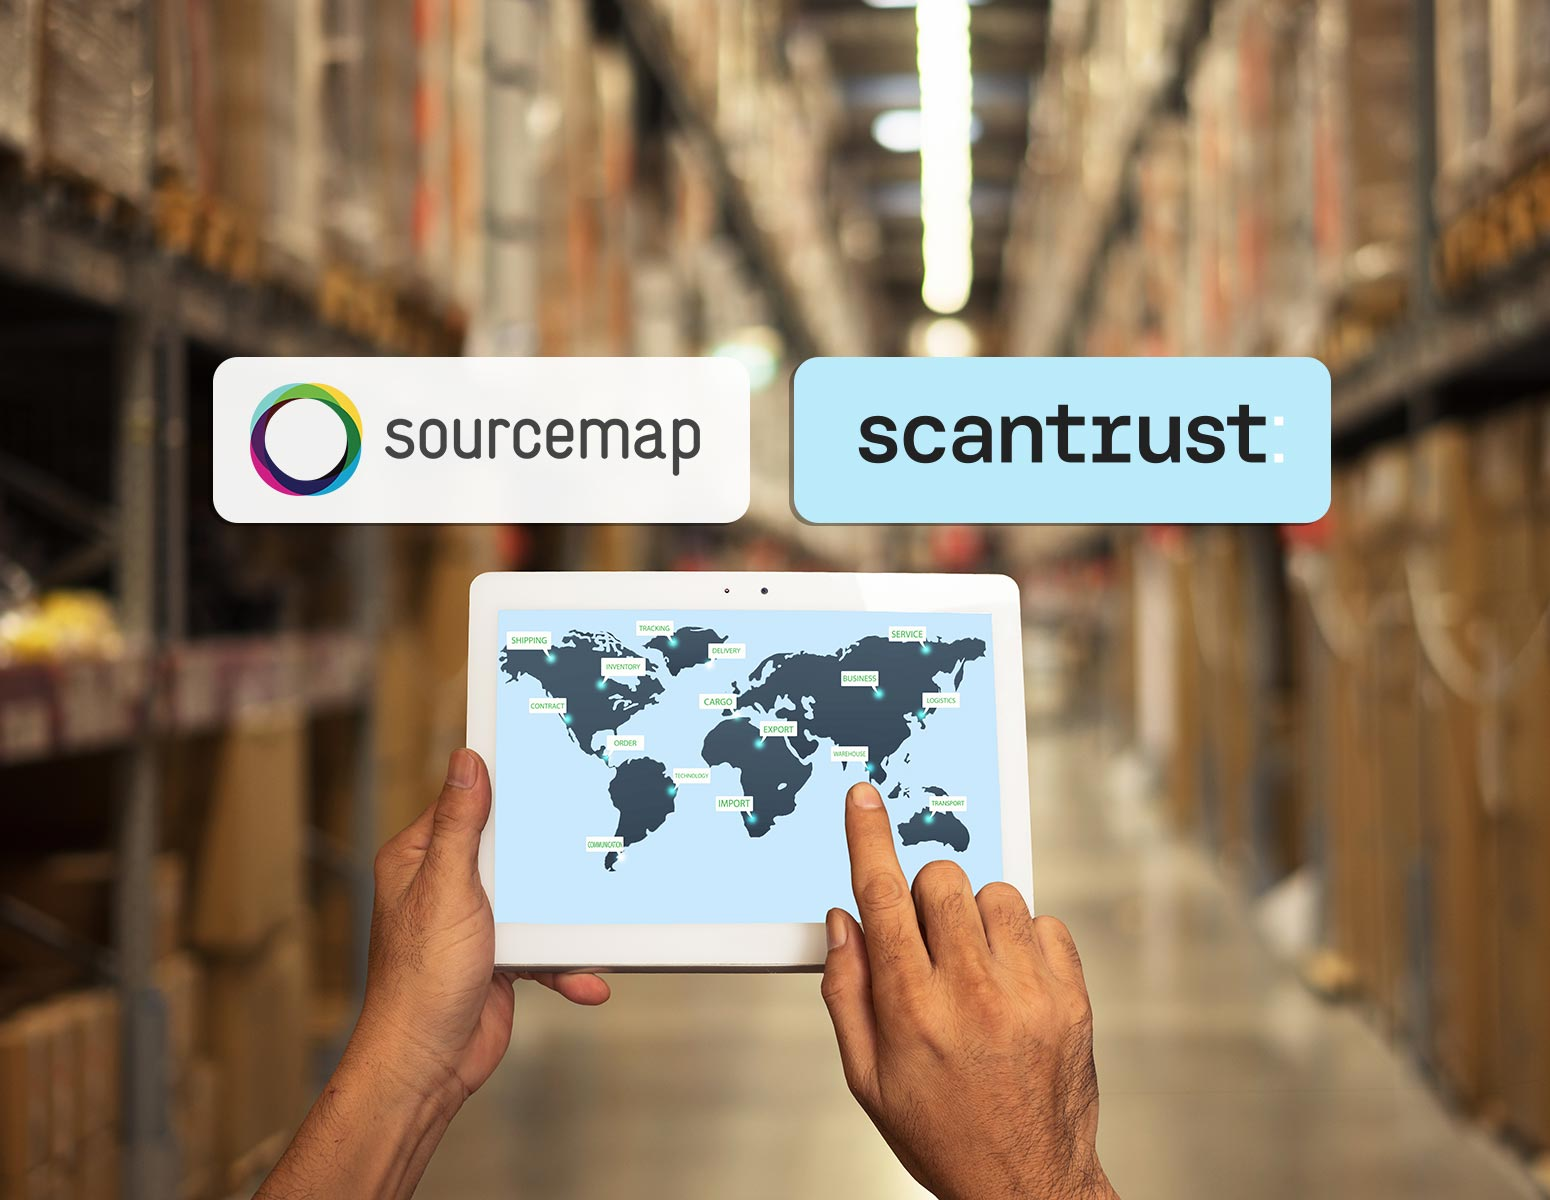 Sourcemap and Scantrust collaborate on digitalization